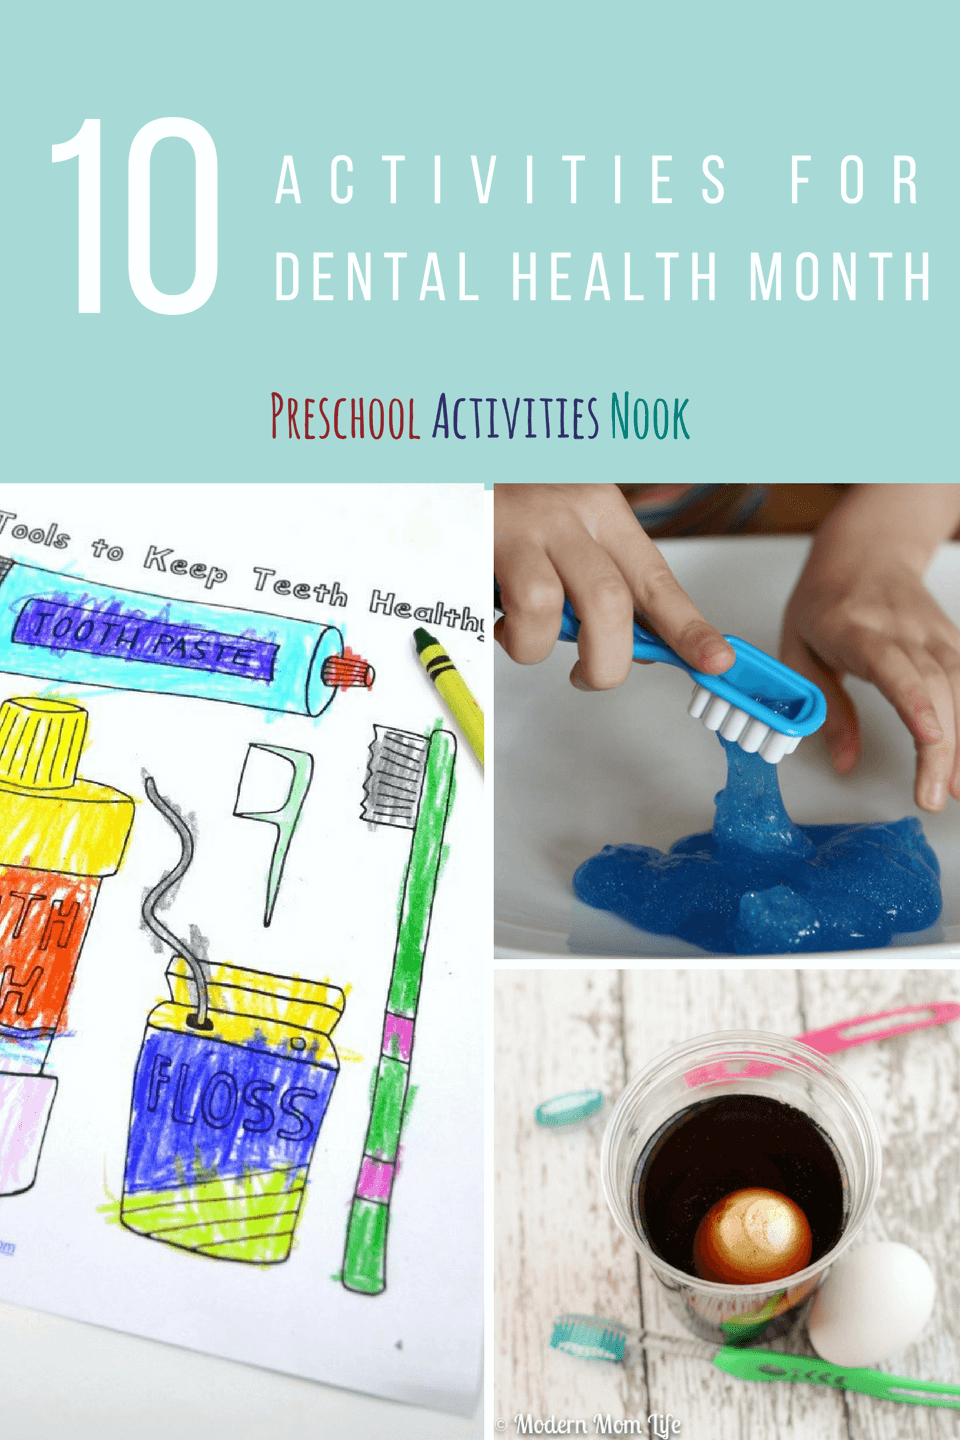 10 Activities For Dental Health Month